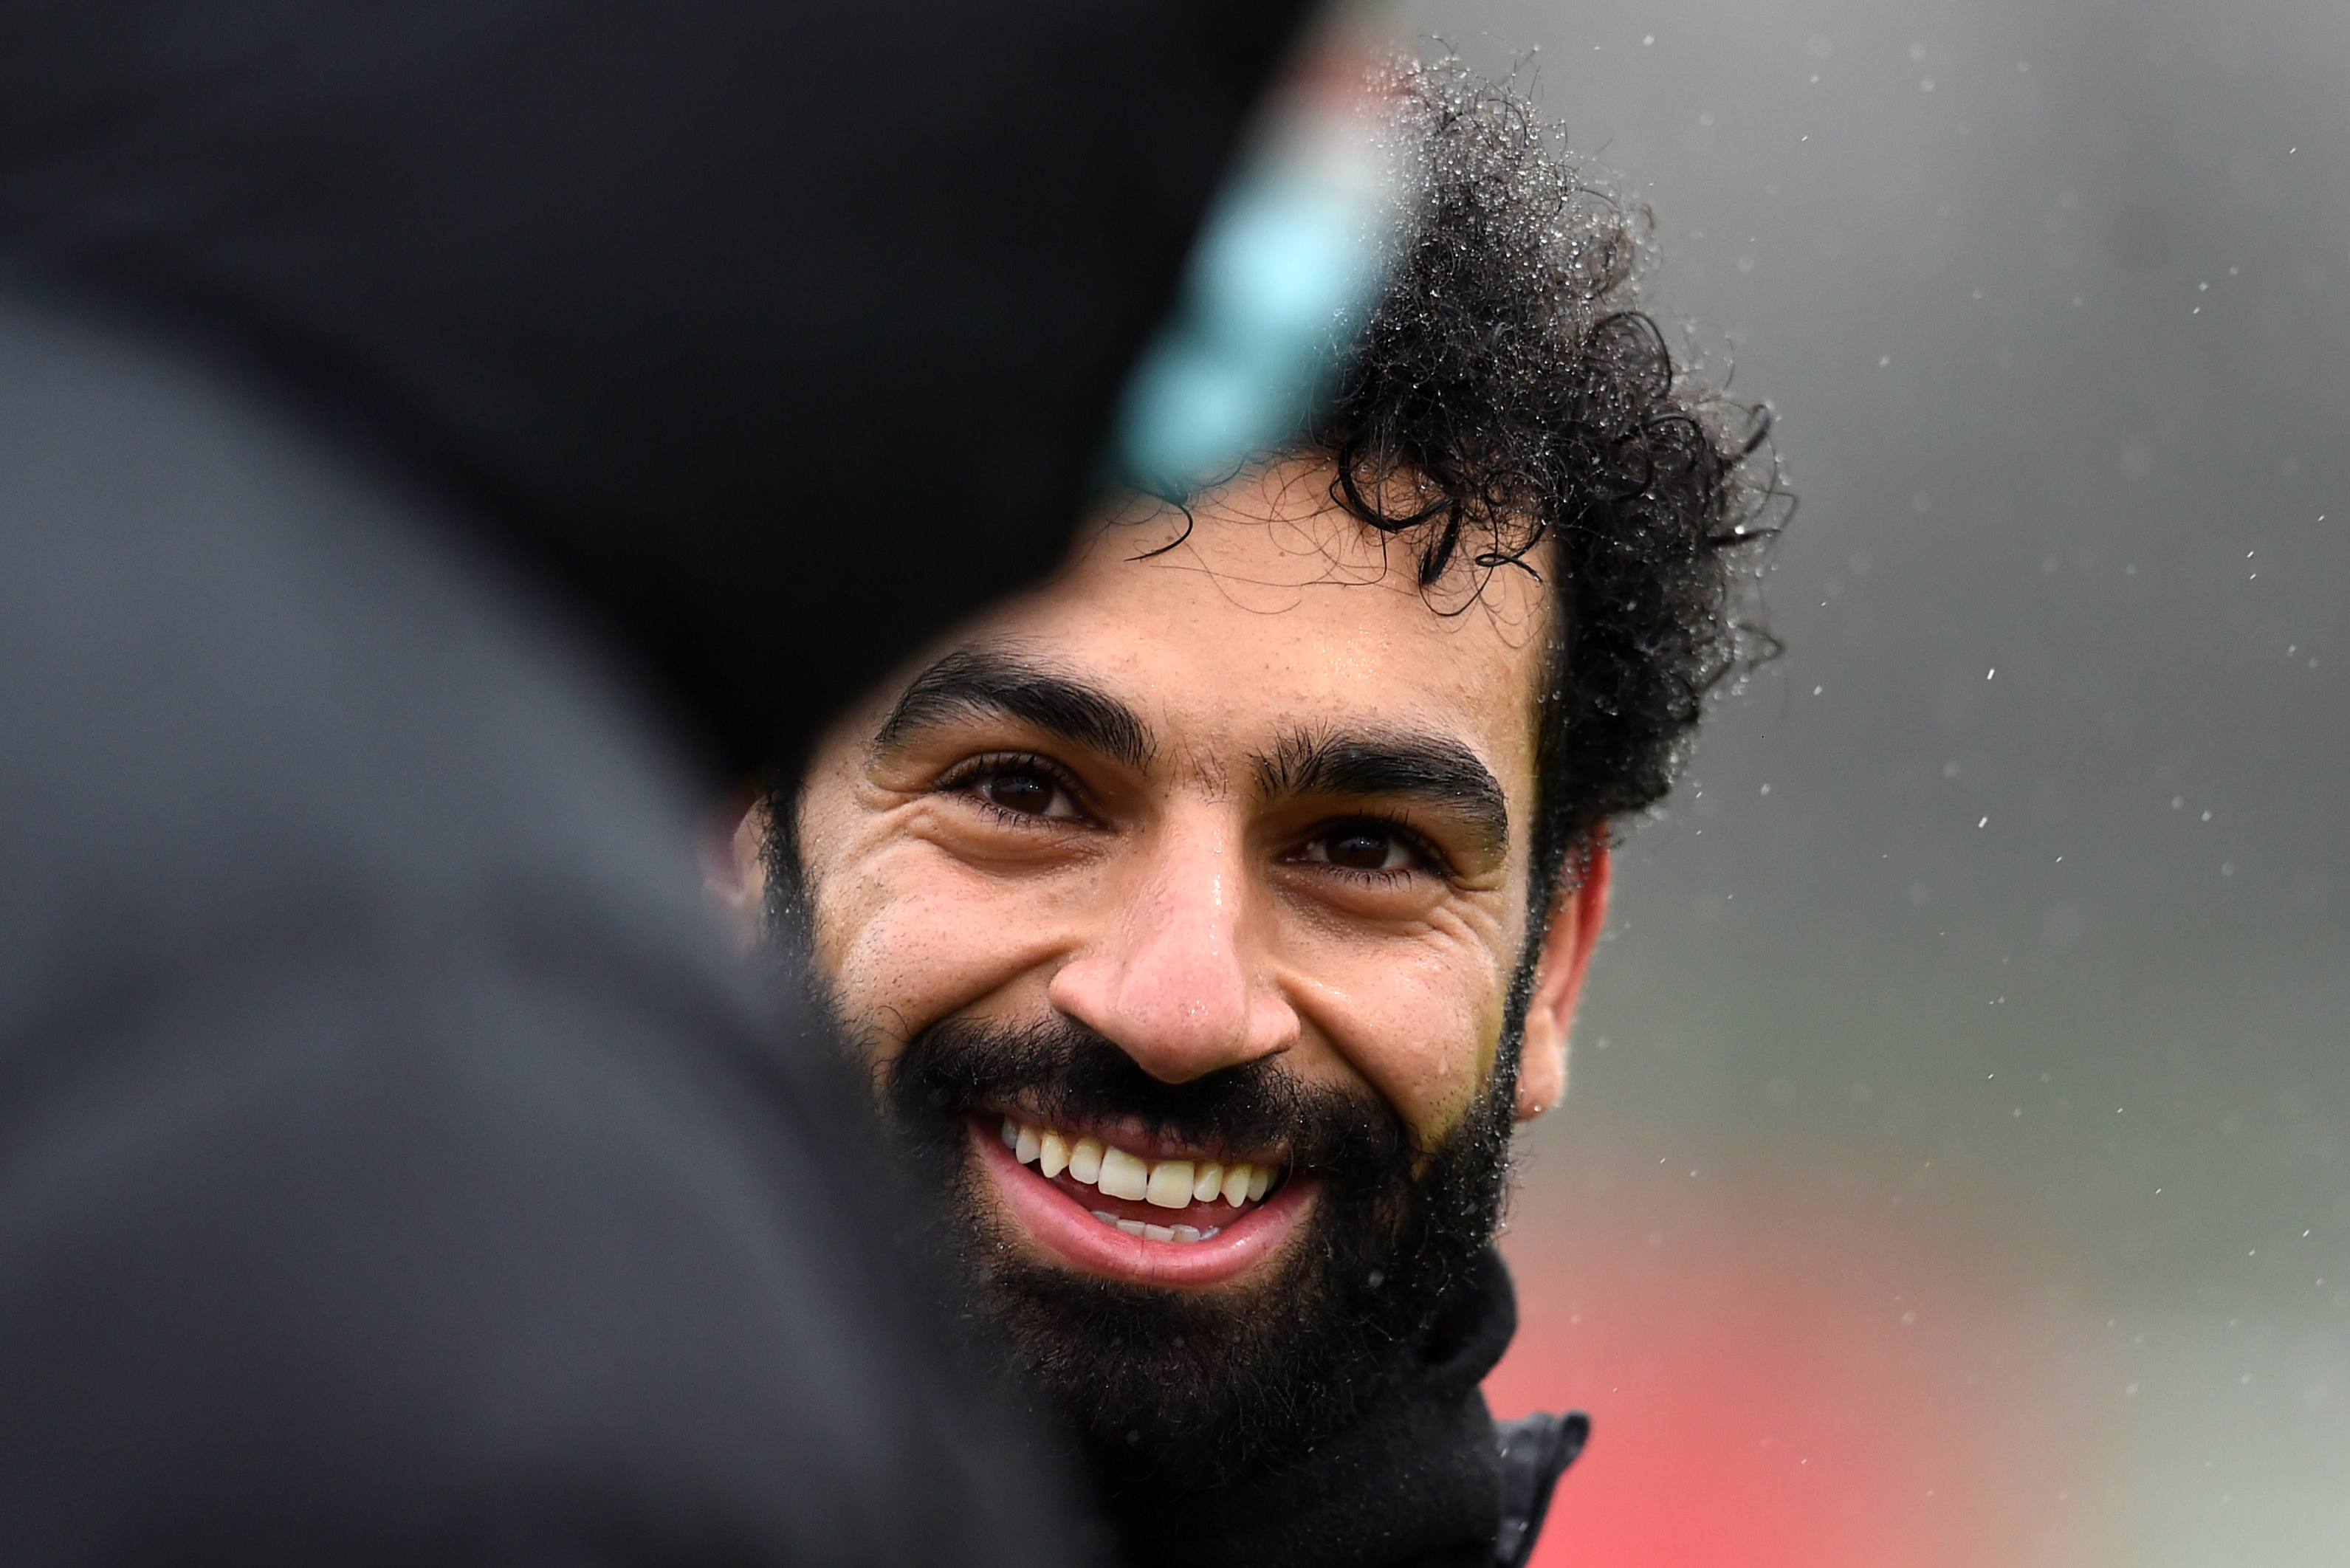 Liverpool XI vs Man United: Confirmed team news, predicted starting lineup, injury latest for today